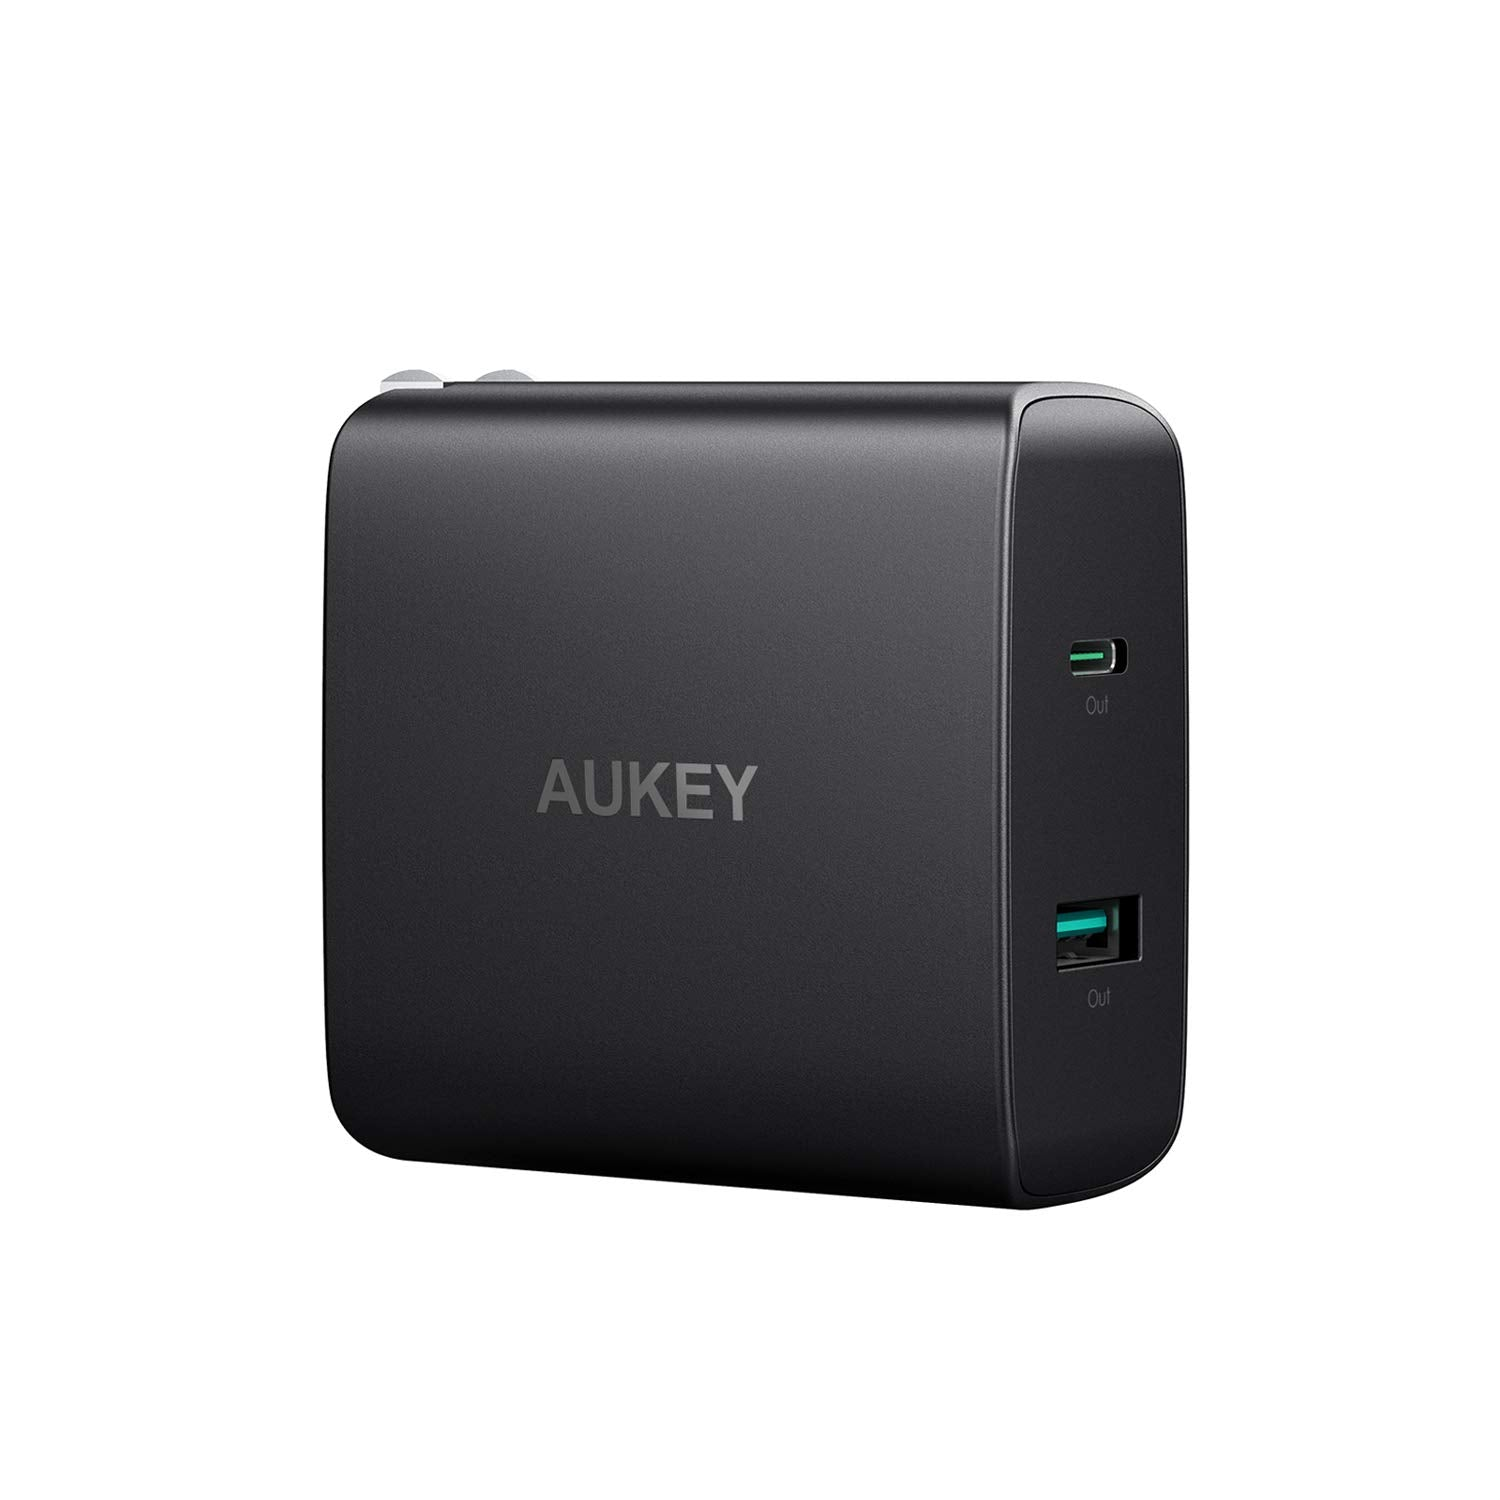 USB C Charger with 56.5W Wall Charger, One 46W Power Delivery 3.0 & 5V / 2.1A Ports USB Wall Charger | PA-Y10 | Black | Aukey supertech.pk